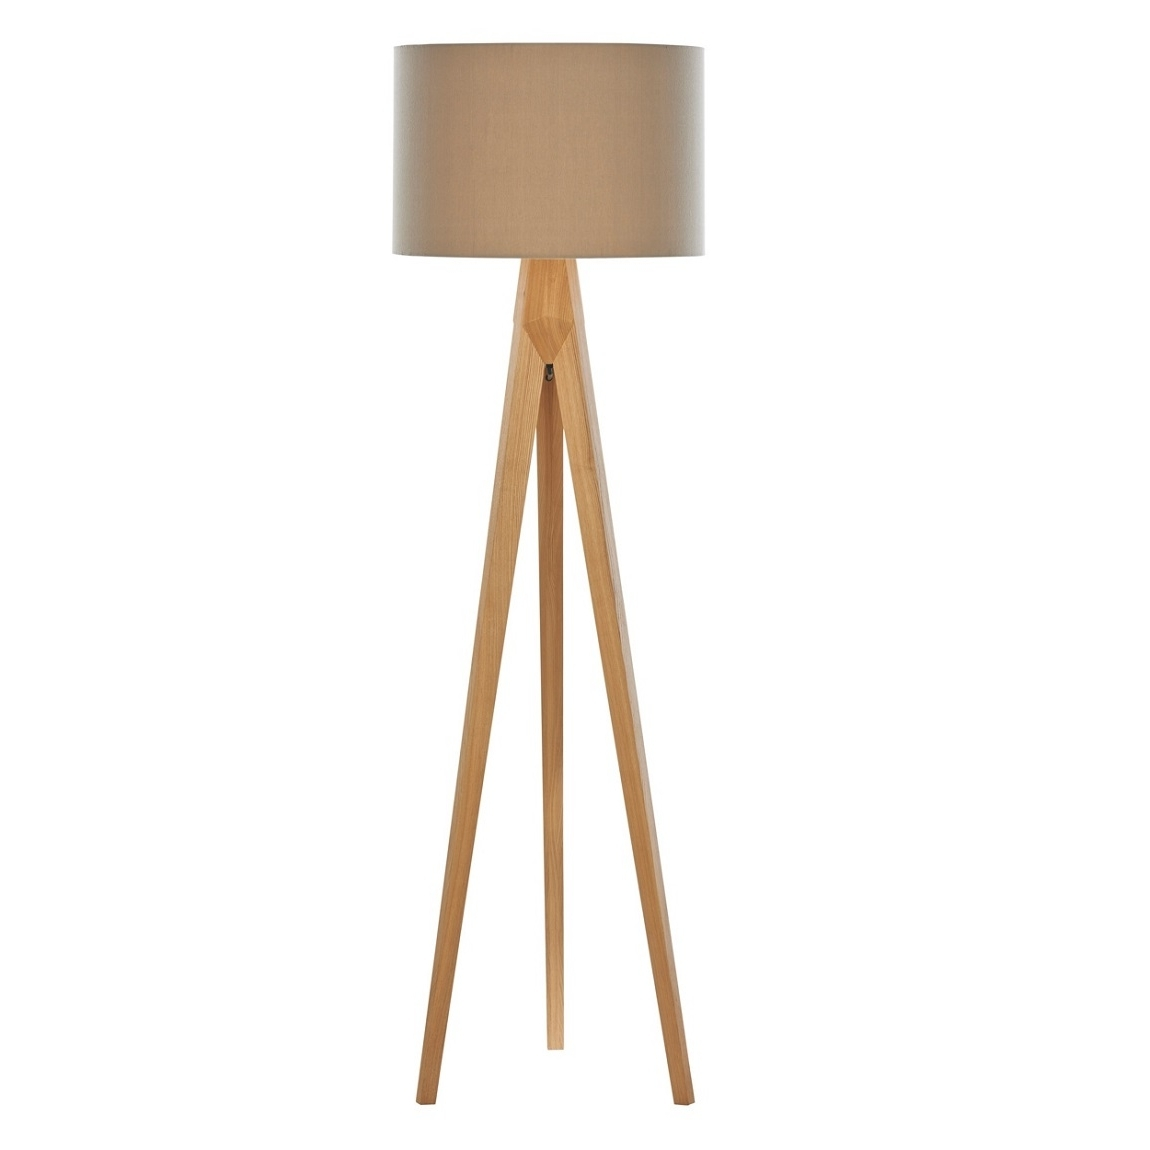 Latest Debenhams Home Collection 'hudson' Wooden Tripod Floor Lamp Living Throughout Debenhams Table Lamps For Living Room (View 9 of 20)